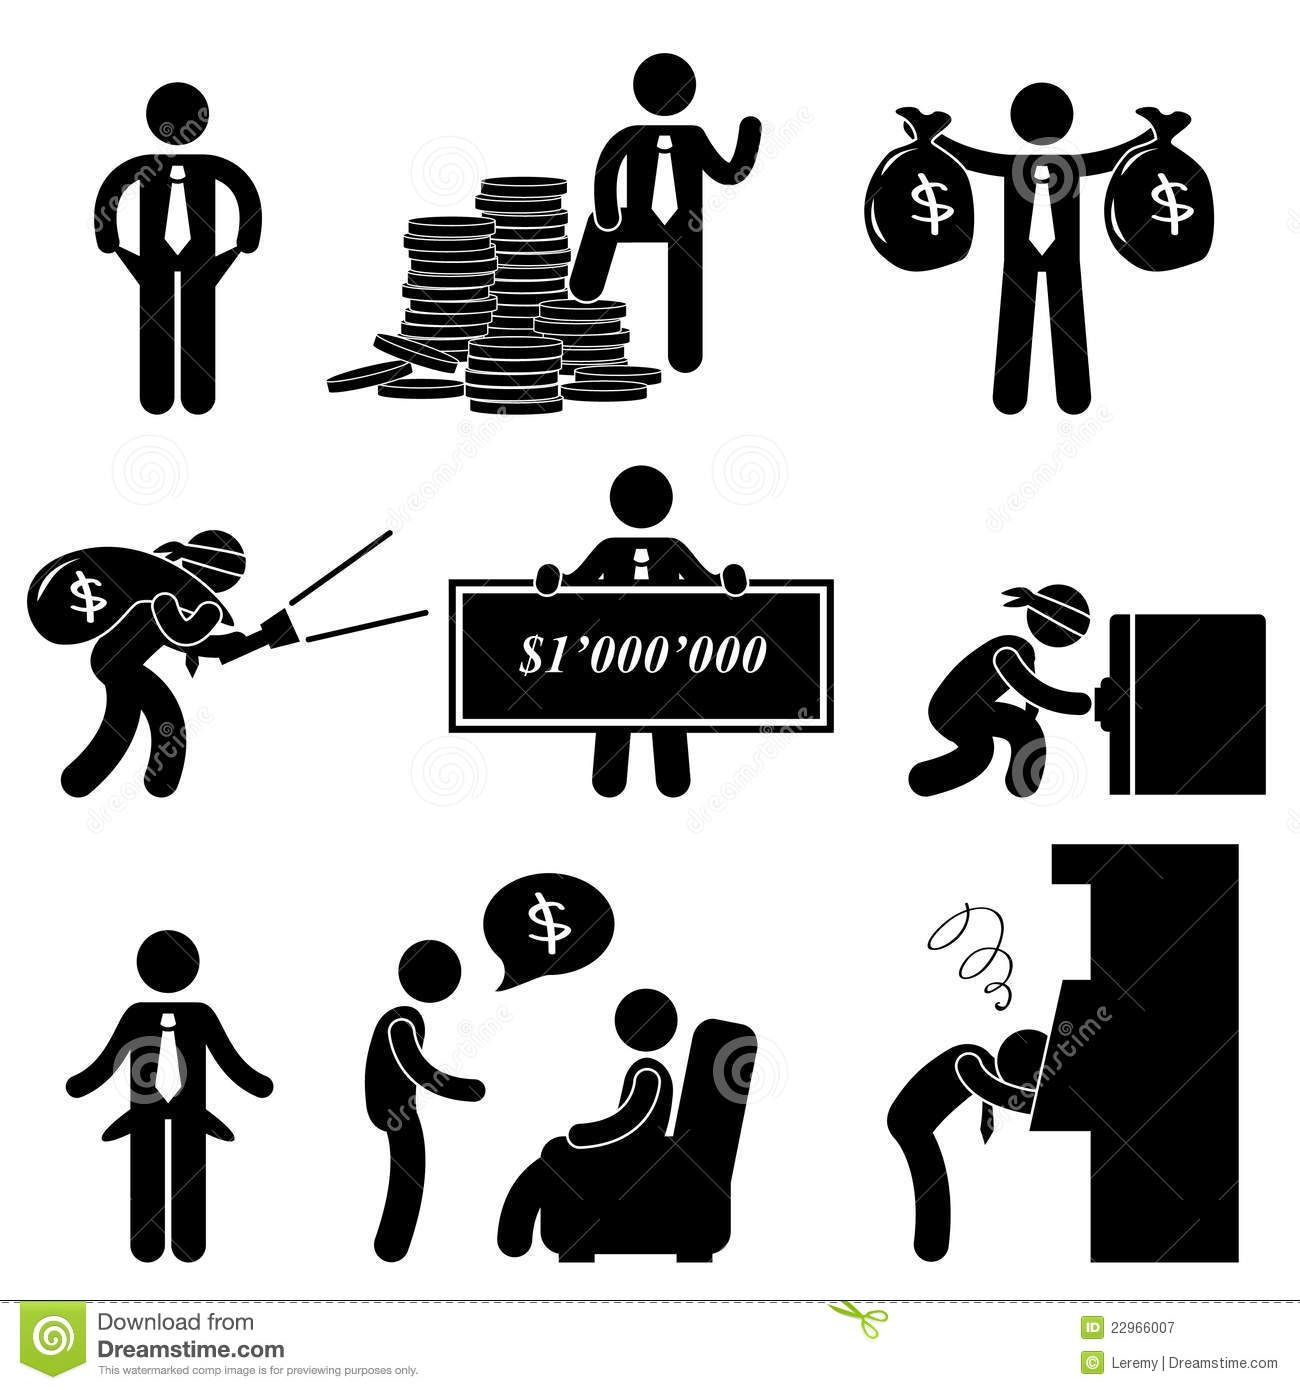 Rich poor man people pictogram 22966007g 13001390 writing illustration of rich poor success failure desperate businessman icon symbol sign vector art clipart and stock vectors sciox Images